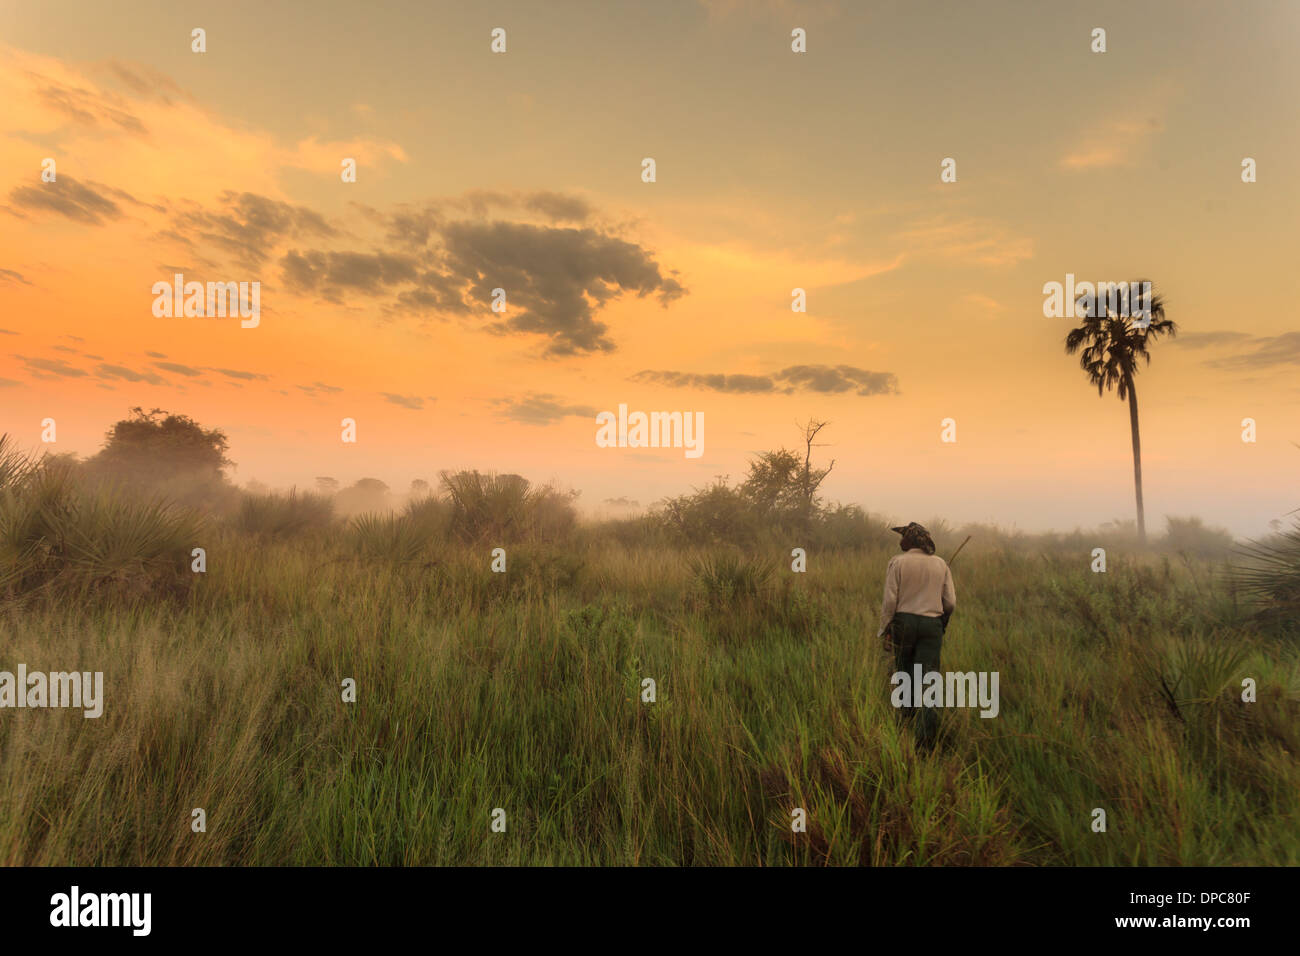 Native guide enjoys walk in wetlands as mist rises with sun's heat in Okavanga Delta, Botswana, Africa - Stock Image